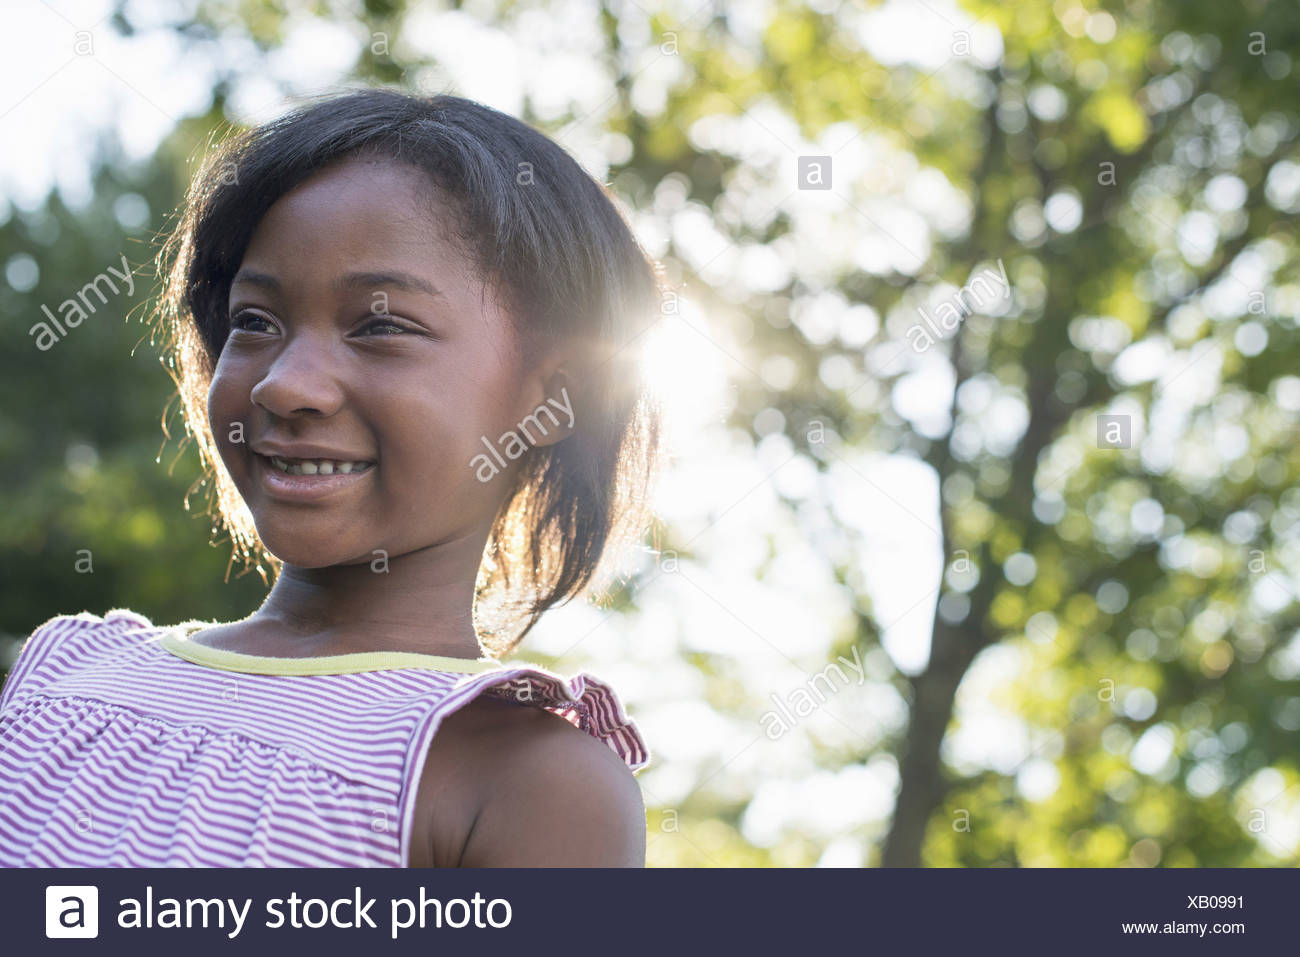 A young girl with short hair in a striped sundress smiling - Stock Image